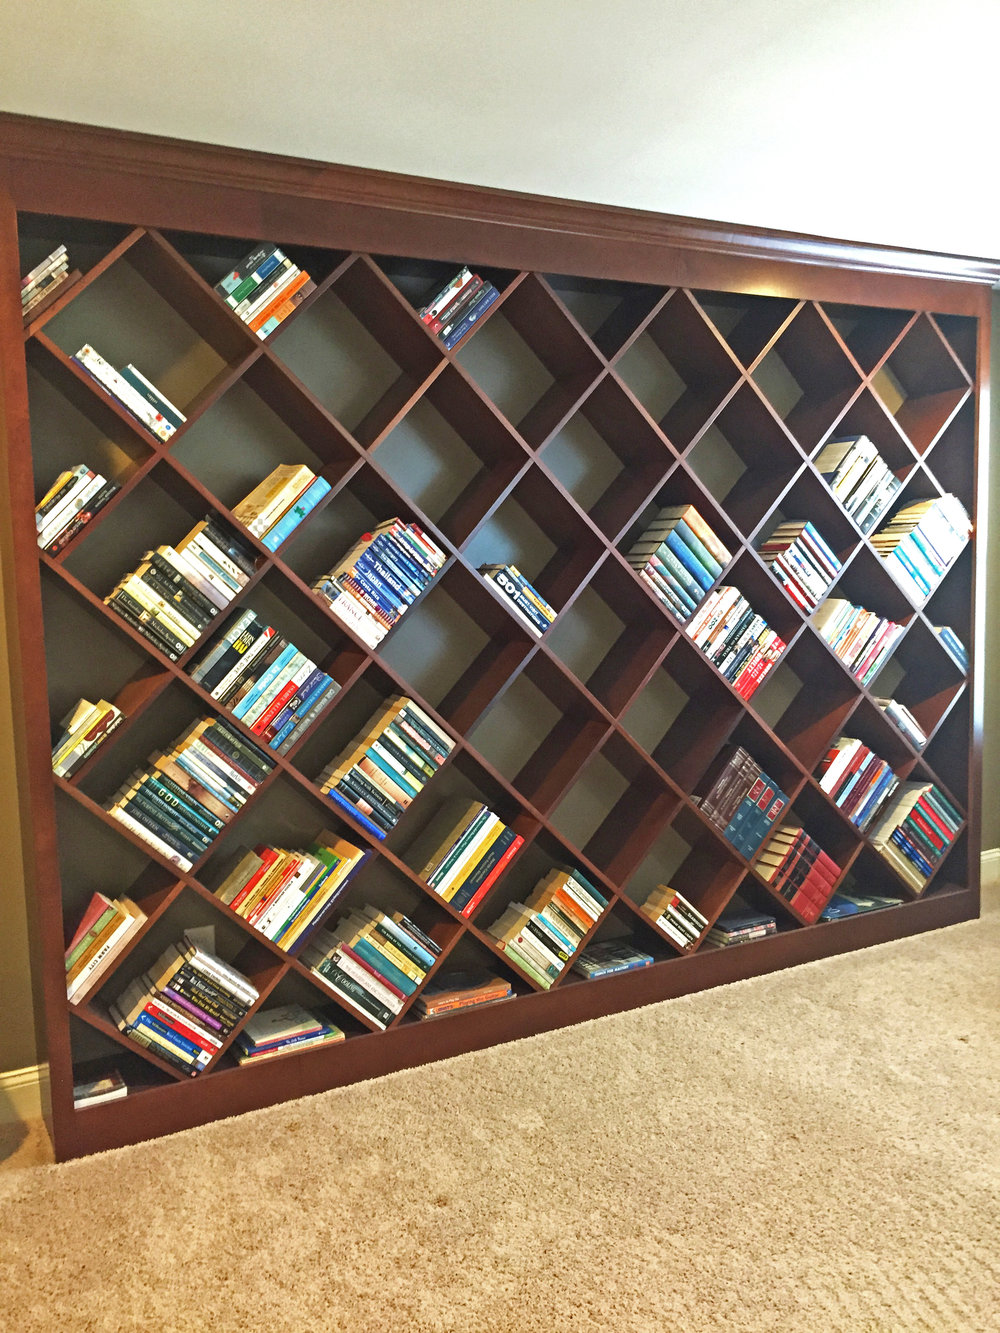 DIAGONAL BOOKCASE - If you want something different, but prefer symmetry and a classic look, a stain grade or painted diagonal bookcase would look great in your home or office.